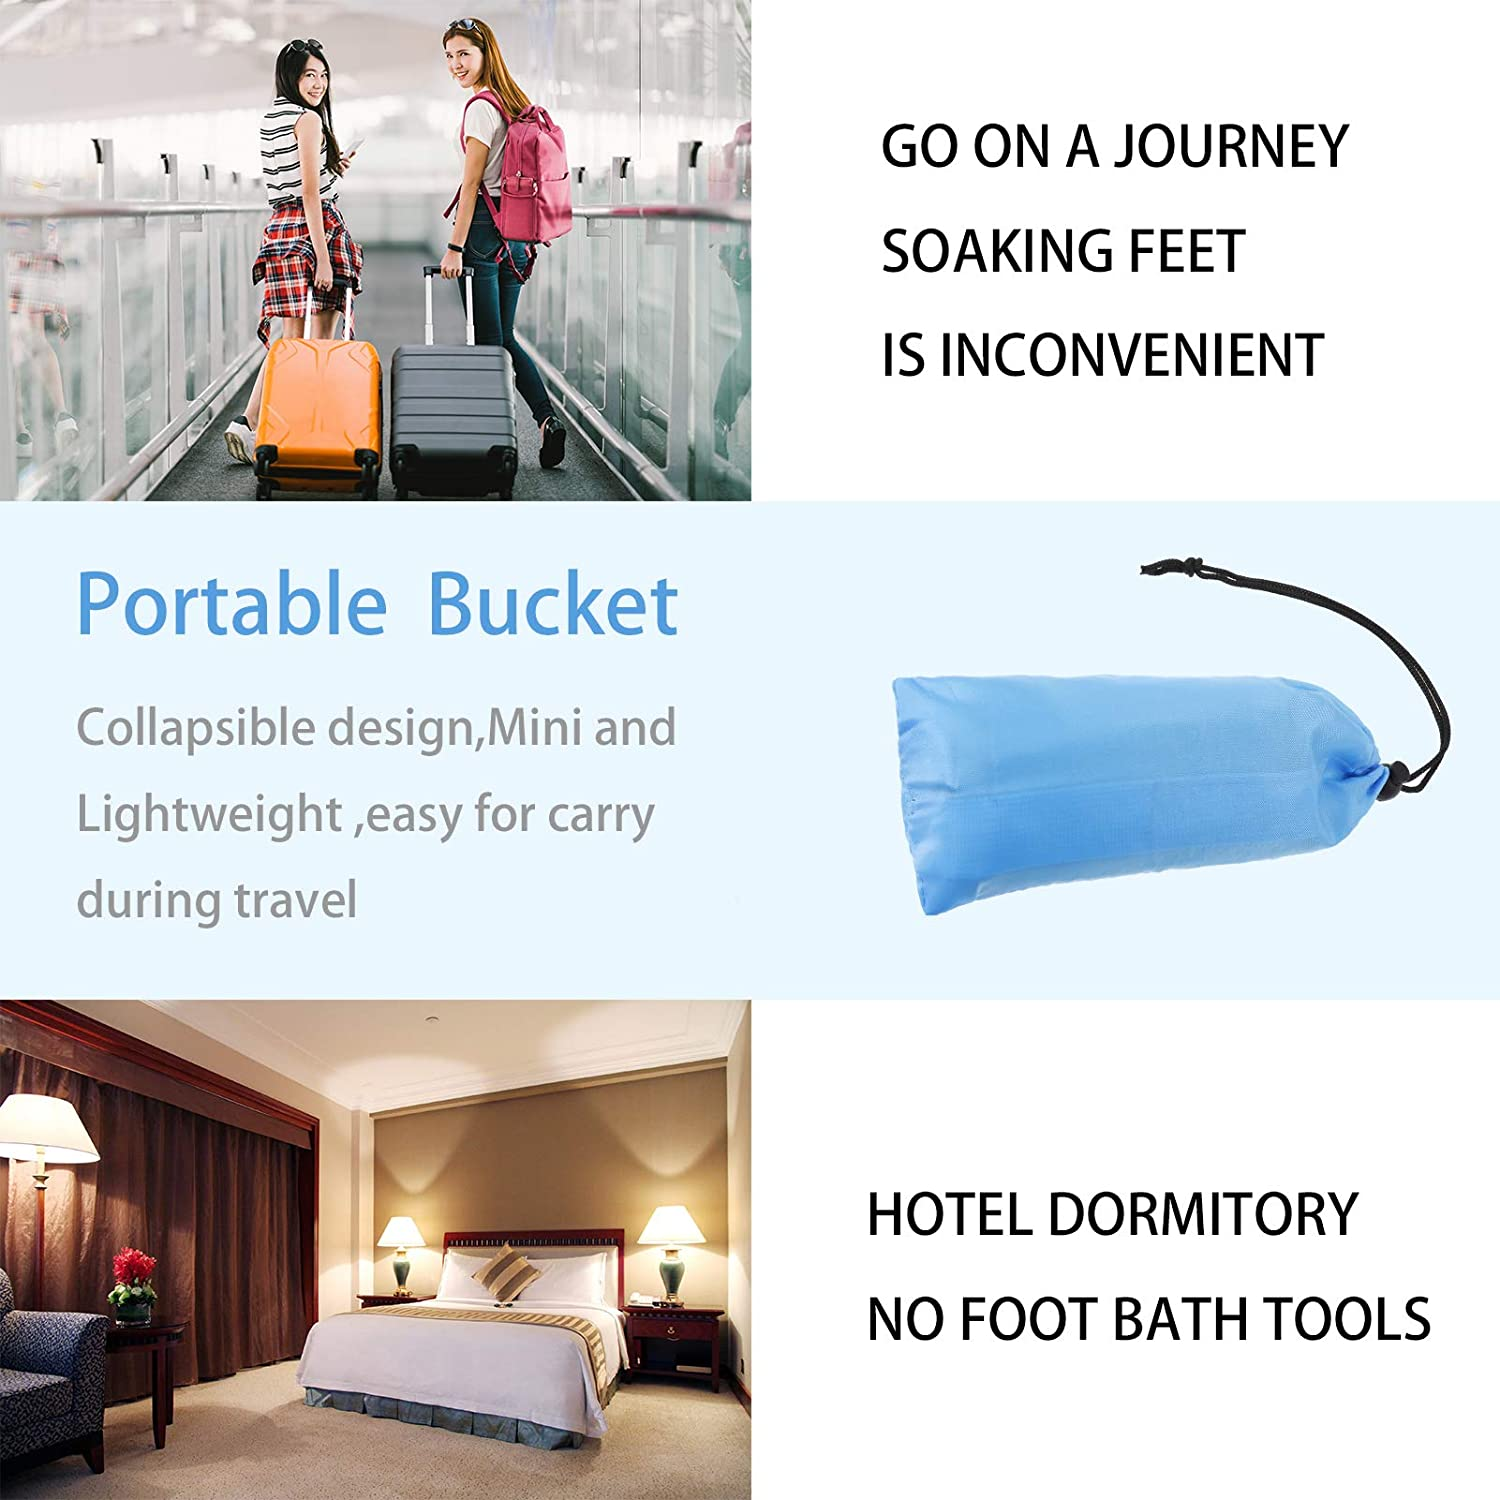 PORTOWN Collapsible Foot Basin for Travel Blue 12L Foot Bath Tub Portable Foot Soak Spa Basin Multifunctional Folding Water Bucket for Outdoor,Traveling,Camping Hiking /& Fishing